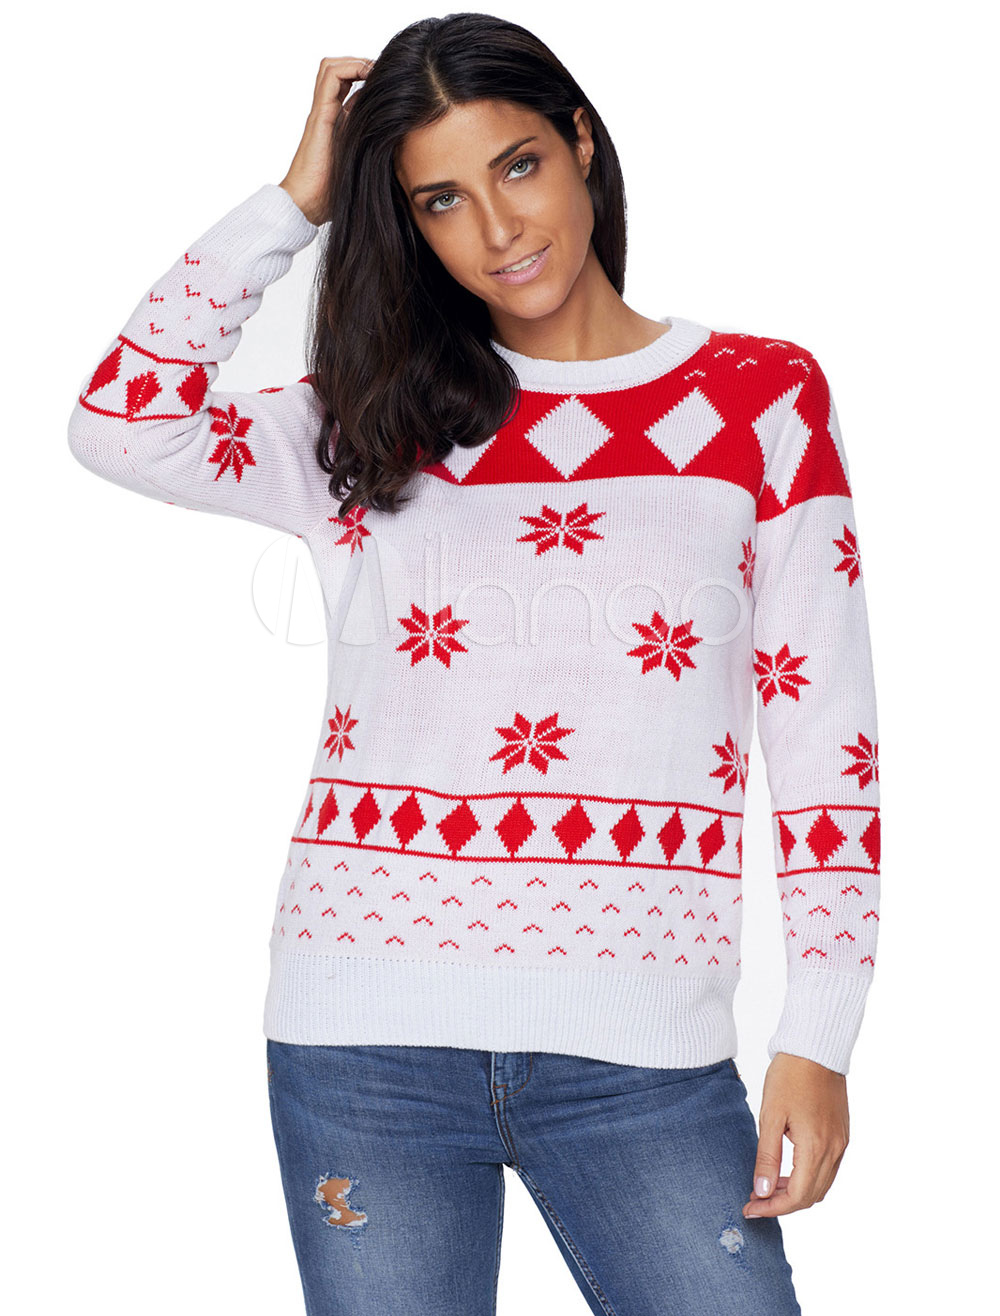 c7cac958a5a3 ... Christmas Long Sleeve Crewneck Geometric Printed Pullover For Women-No.5.  1. 20%OFF. Color:White